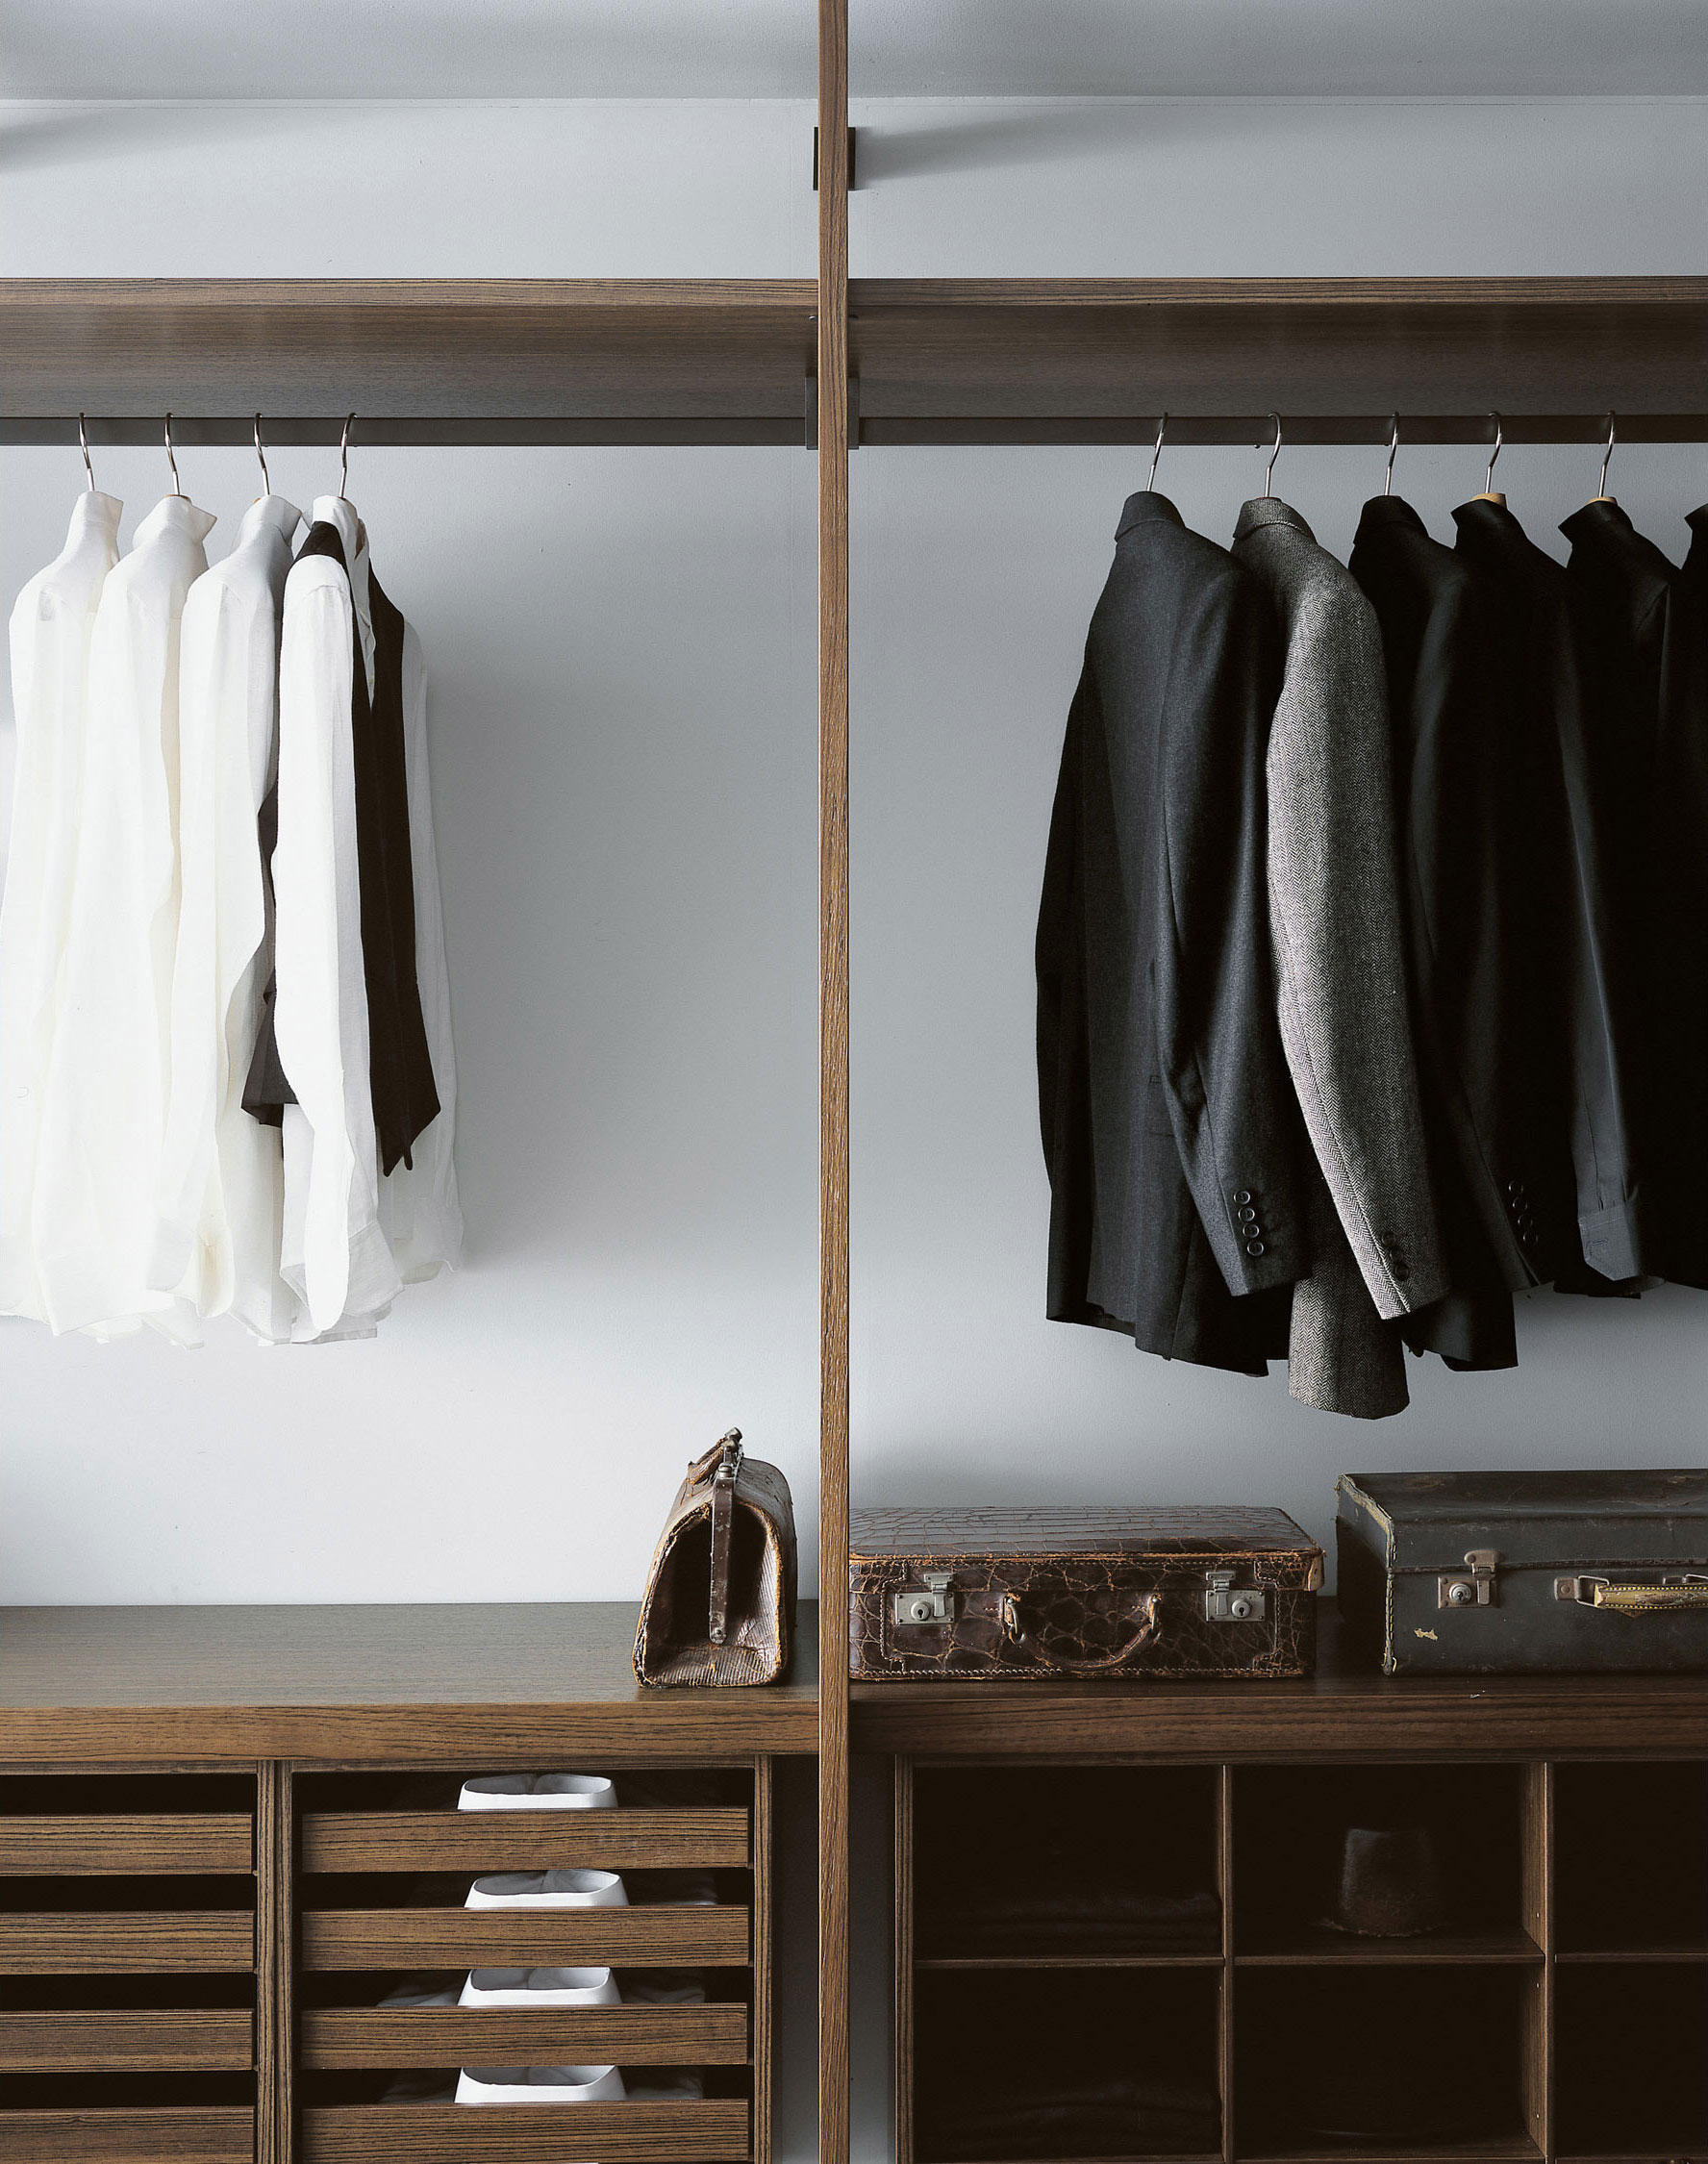 STORAGE CABINA ARMADIO - Walk-in wardrobes from PORRO | Architonic